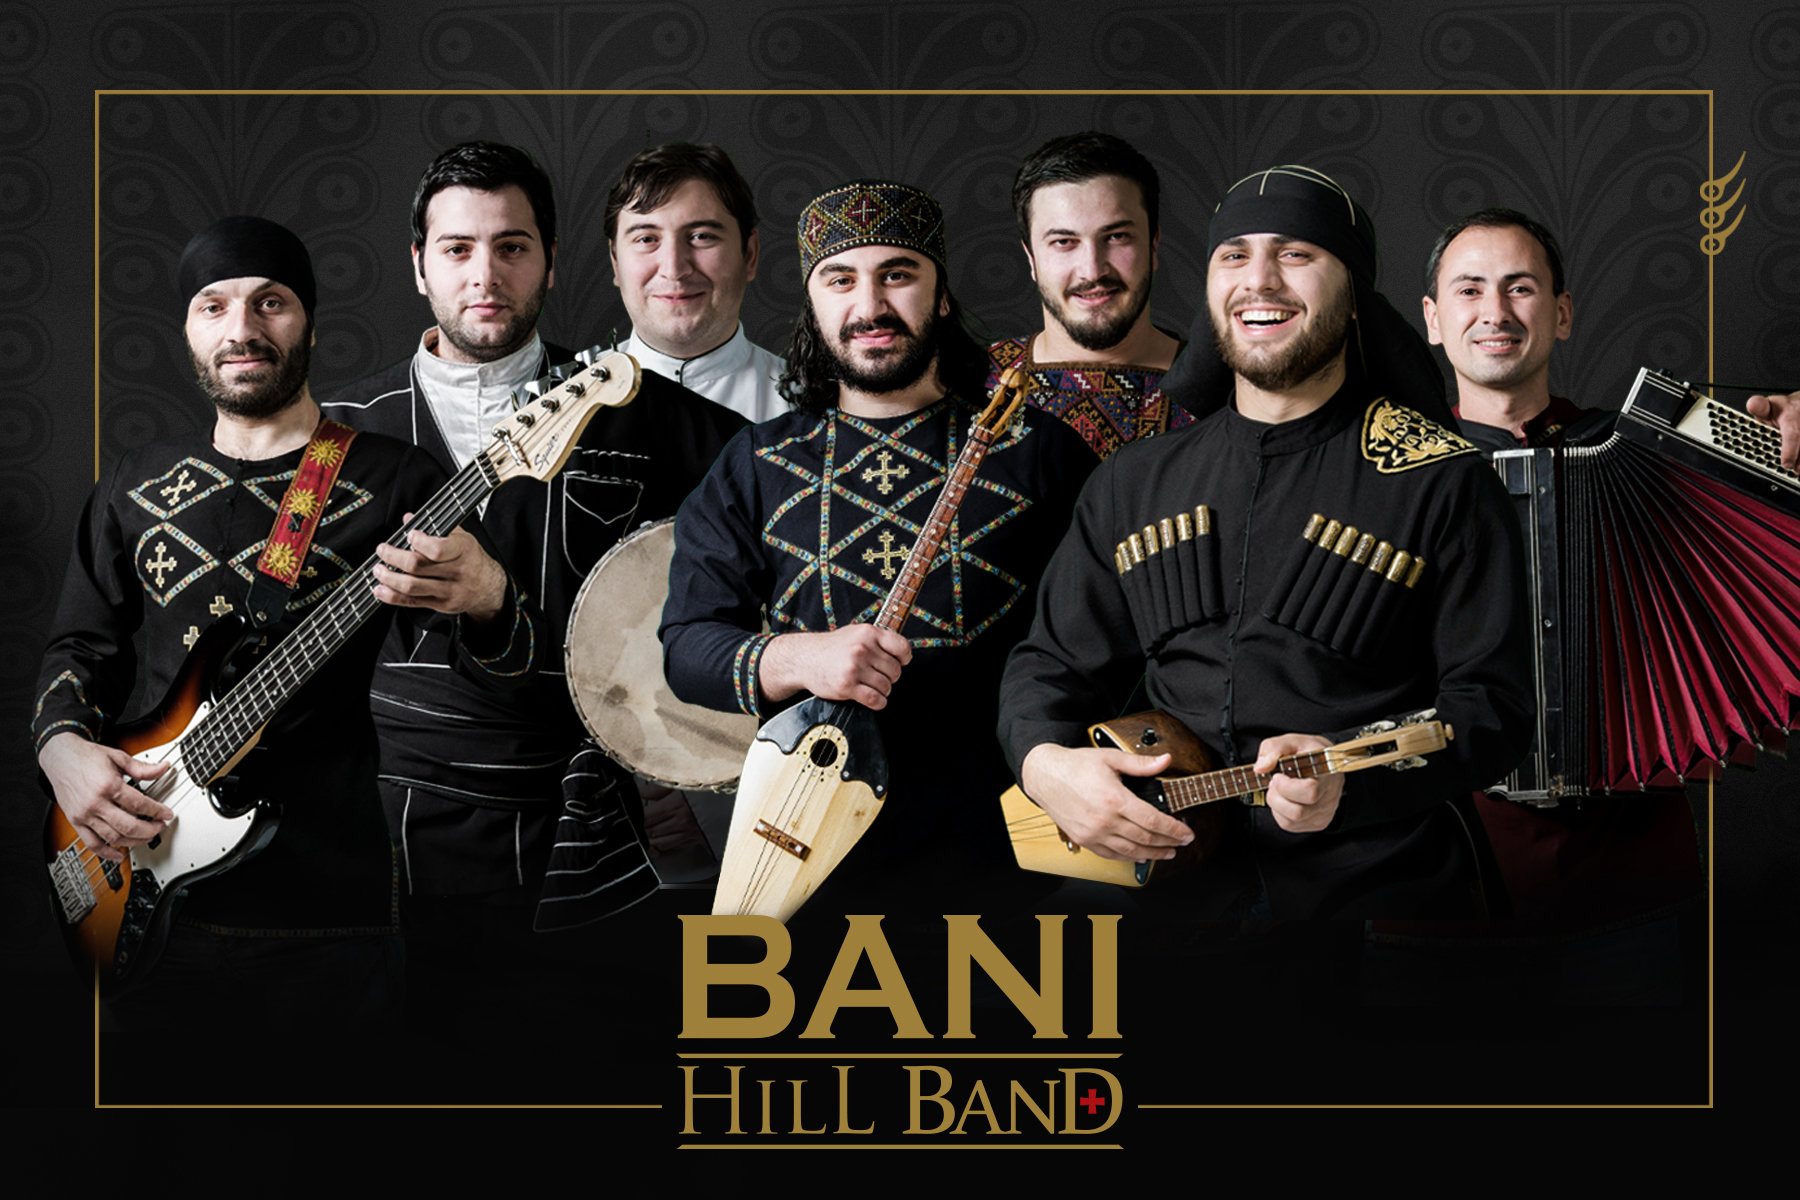 Bani Hill Band